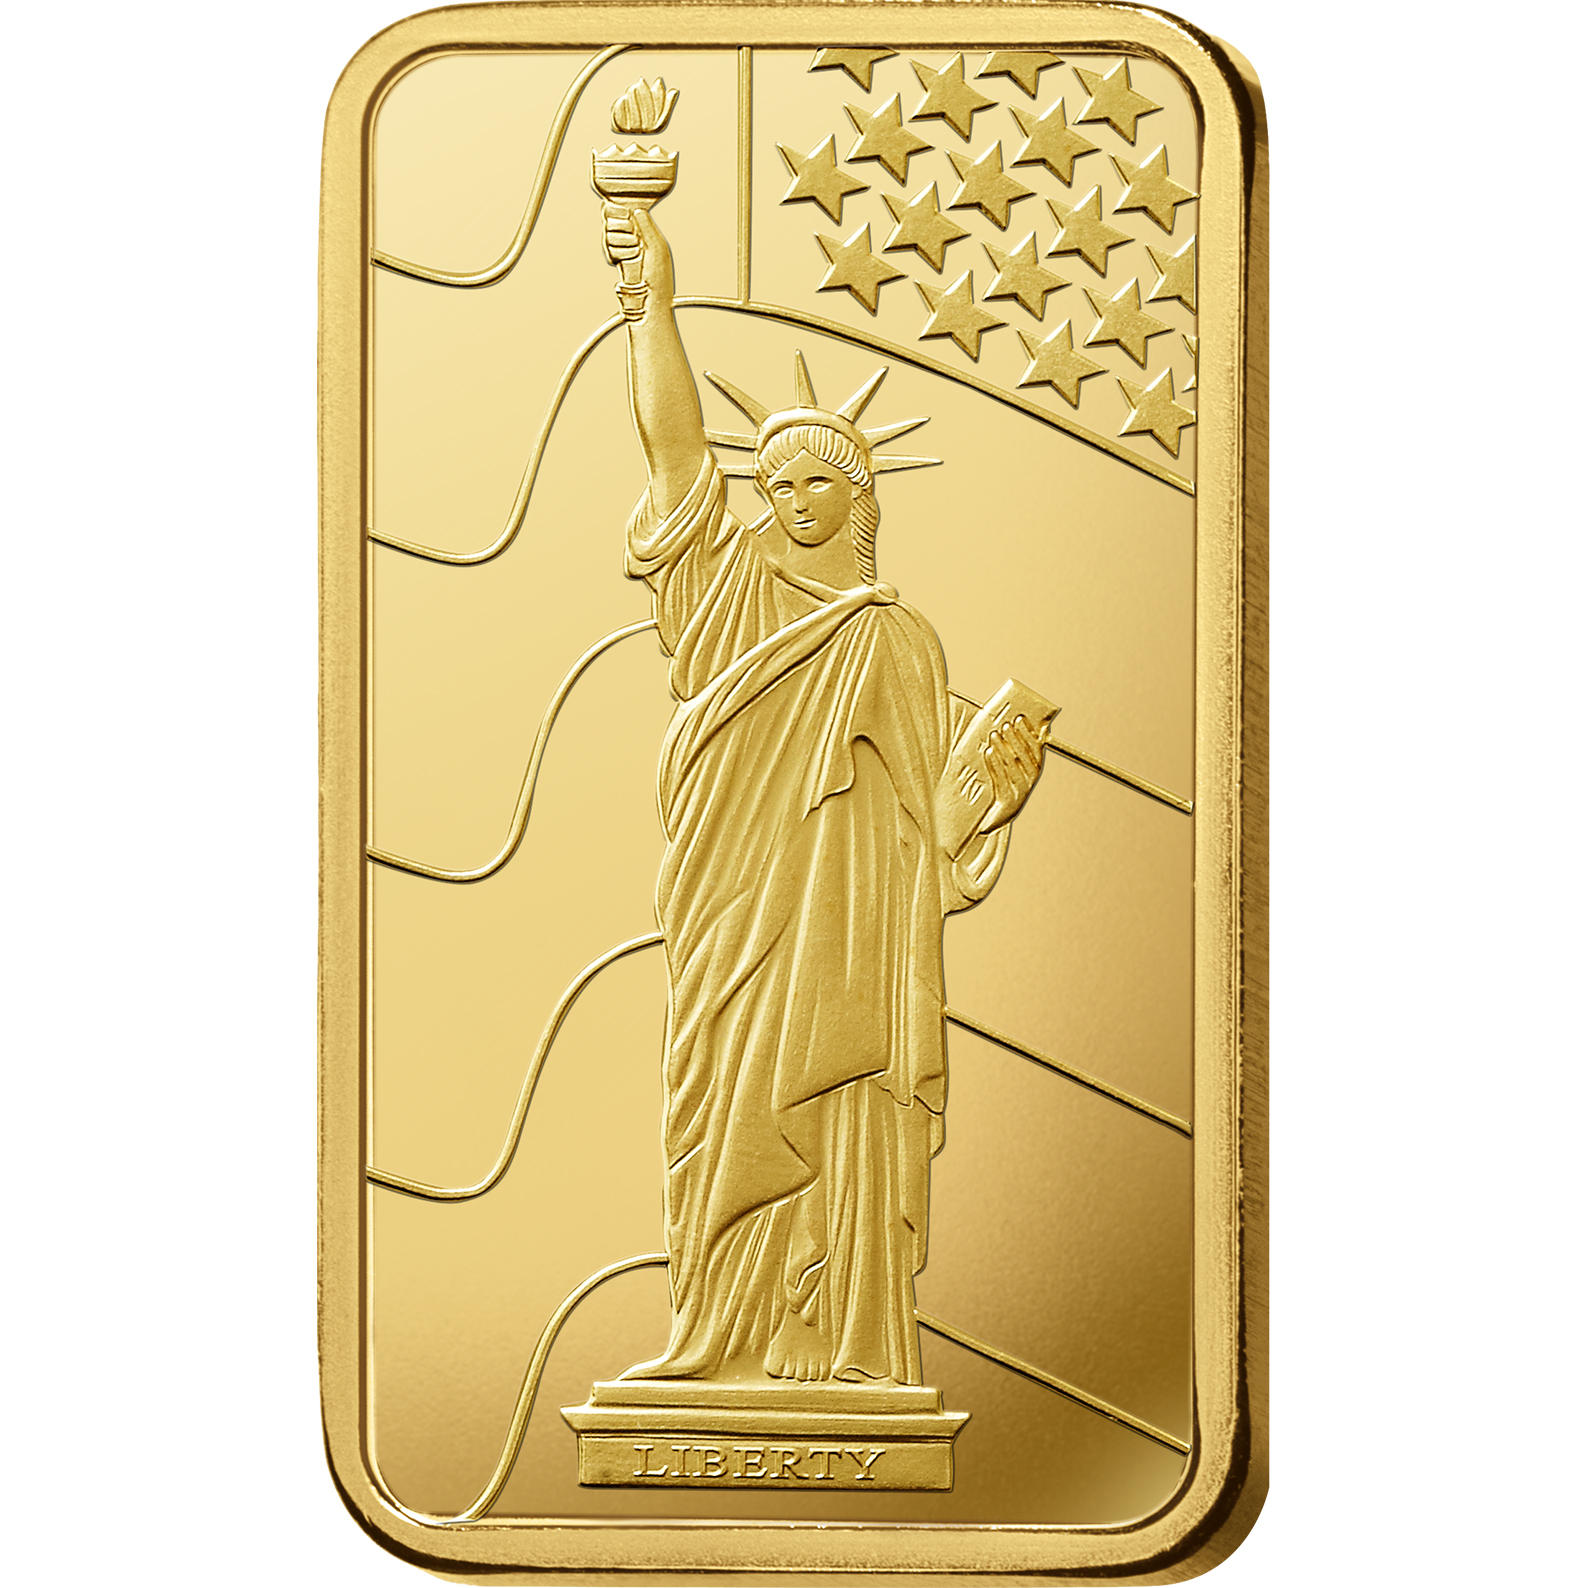 1 gramme lingotin d'or pur 999.9 - PAMP Suisse Liberty